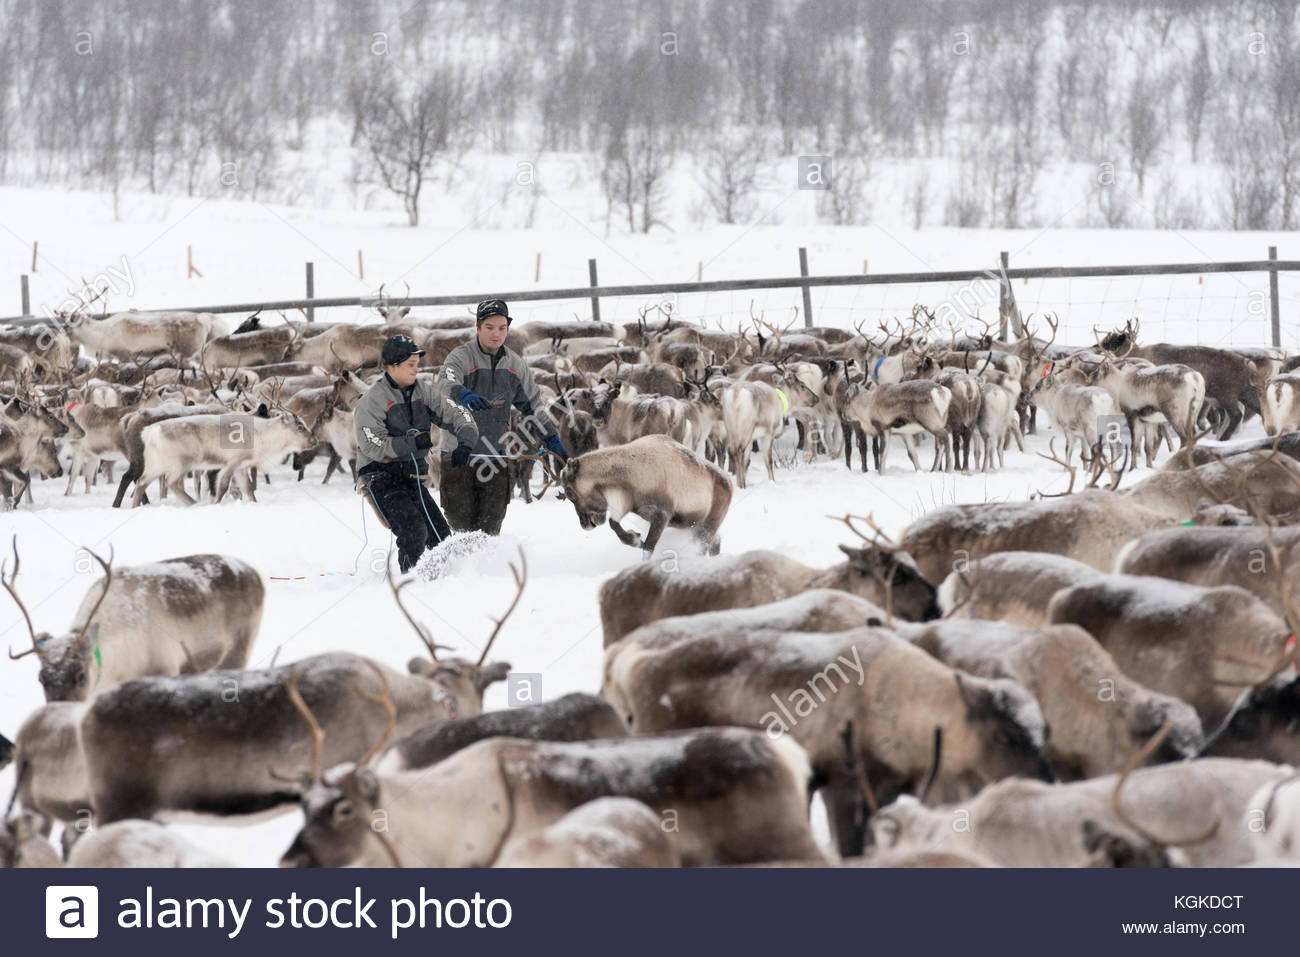 Sami rentier Hirten mark Kälber im Winter. Stockfoto